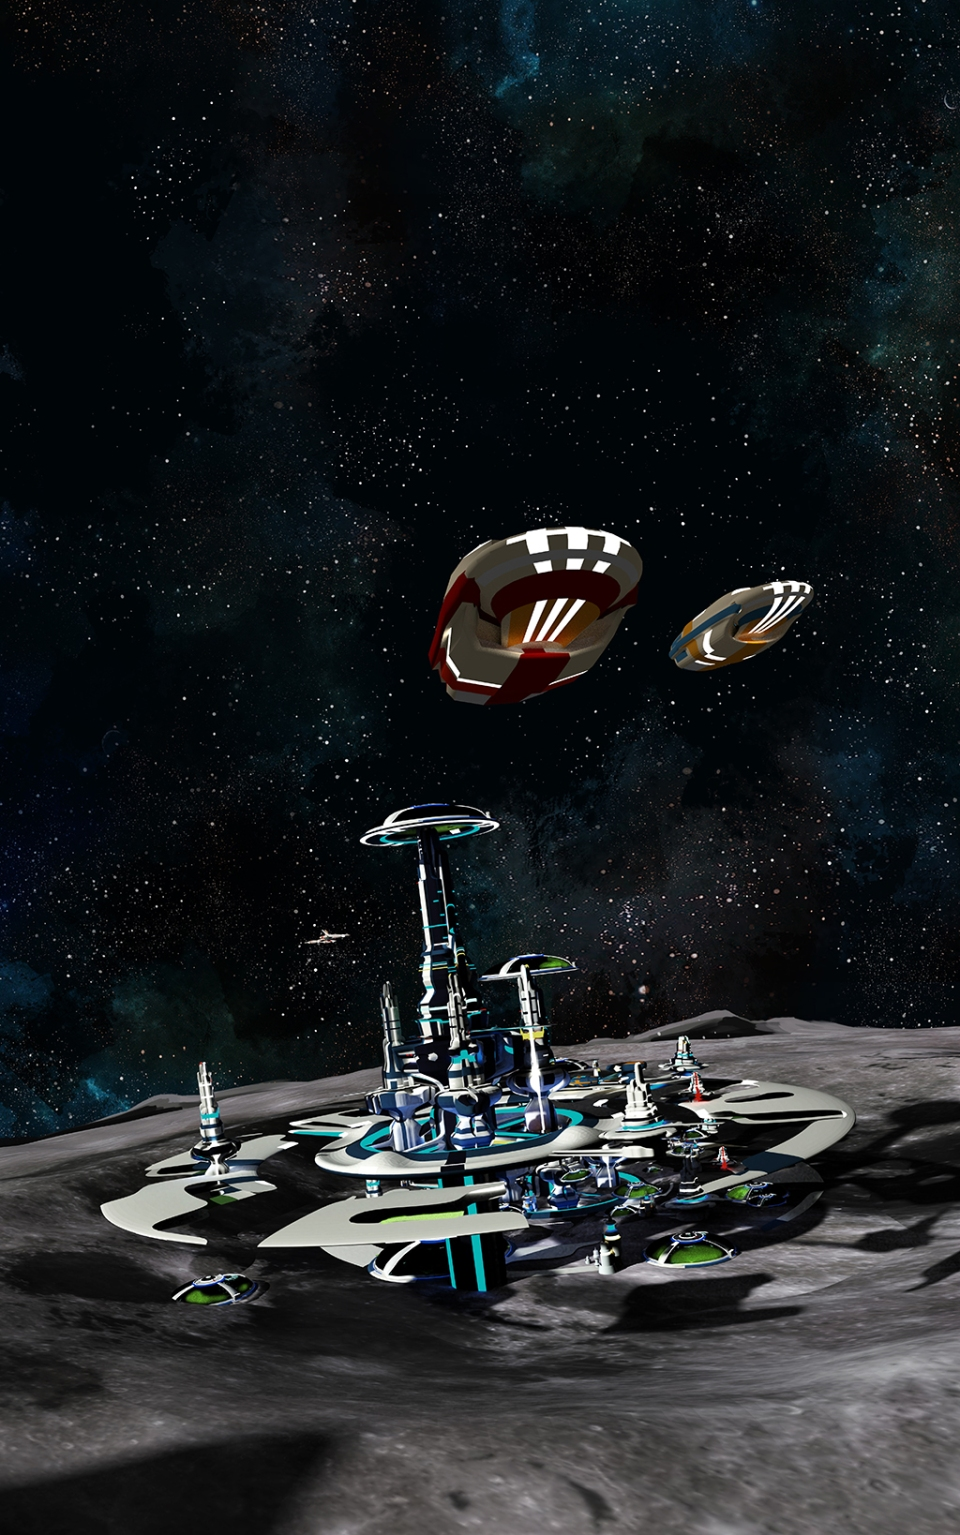 LIGHT-YEARS CONCEPTART - MOON 01B